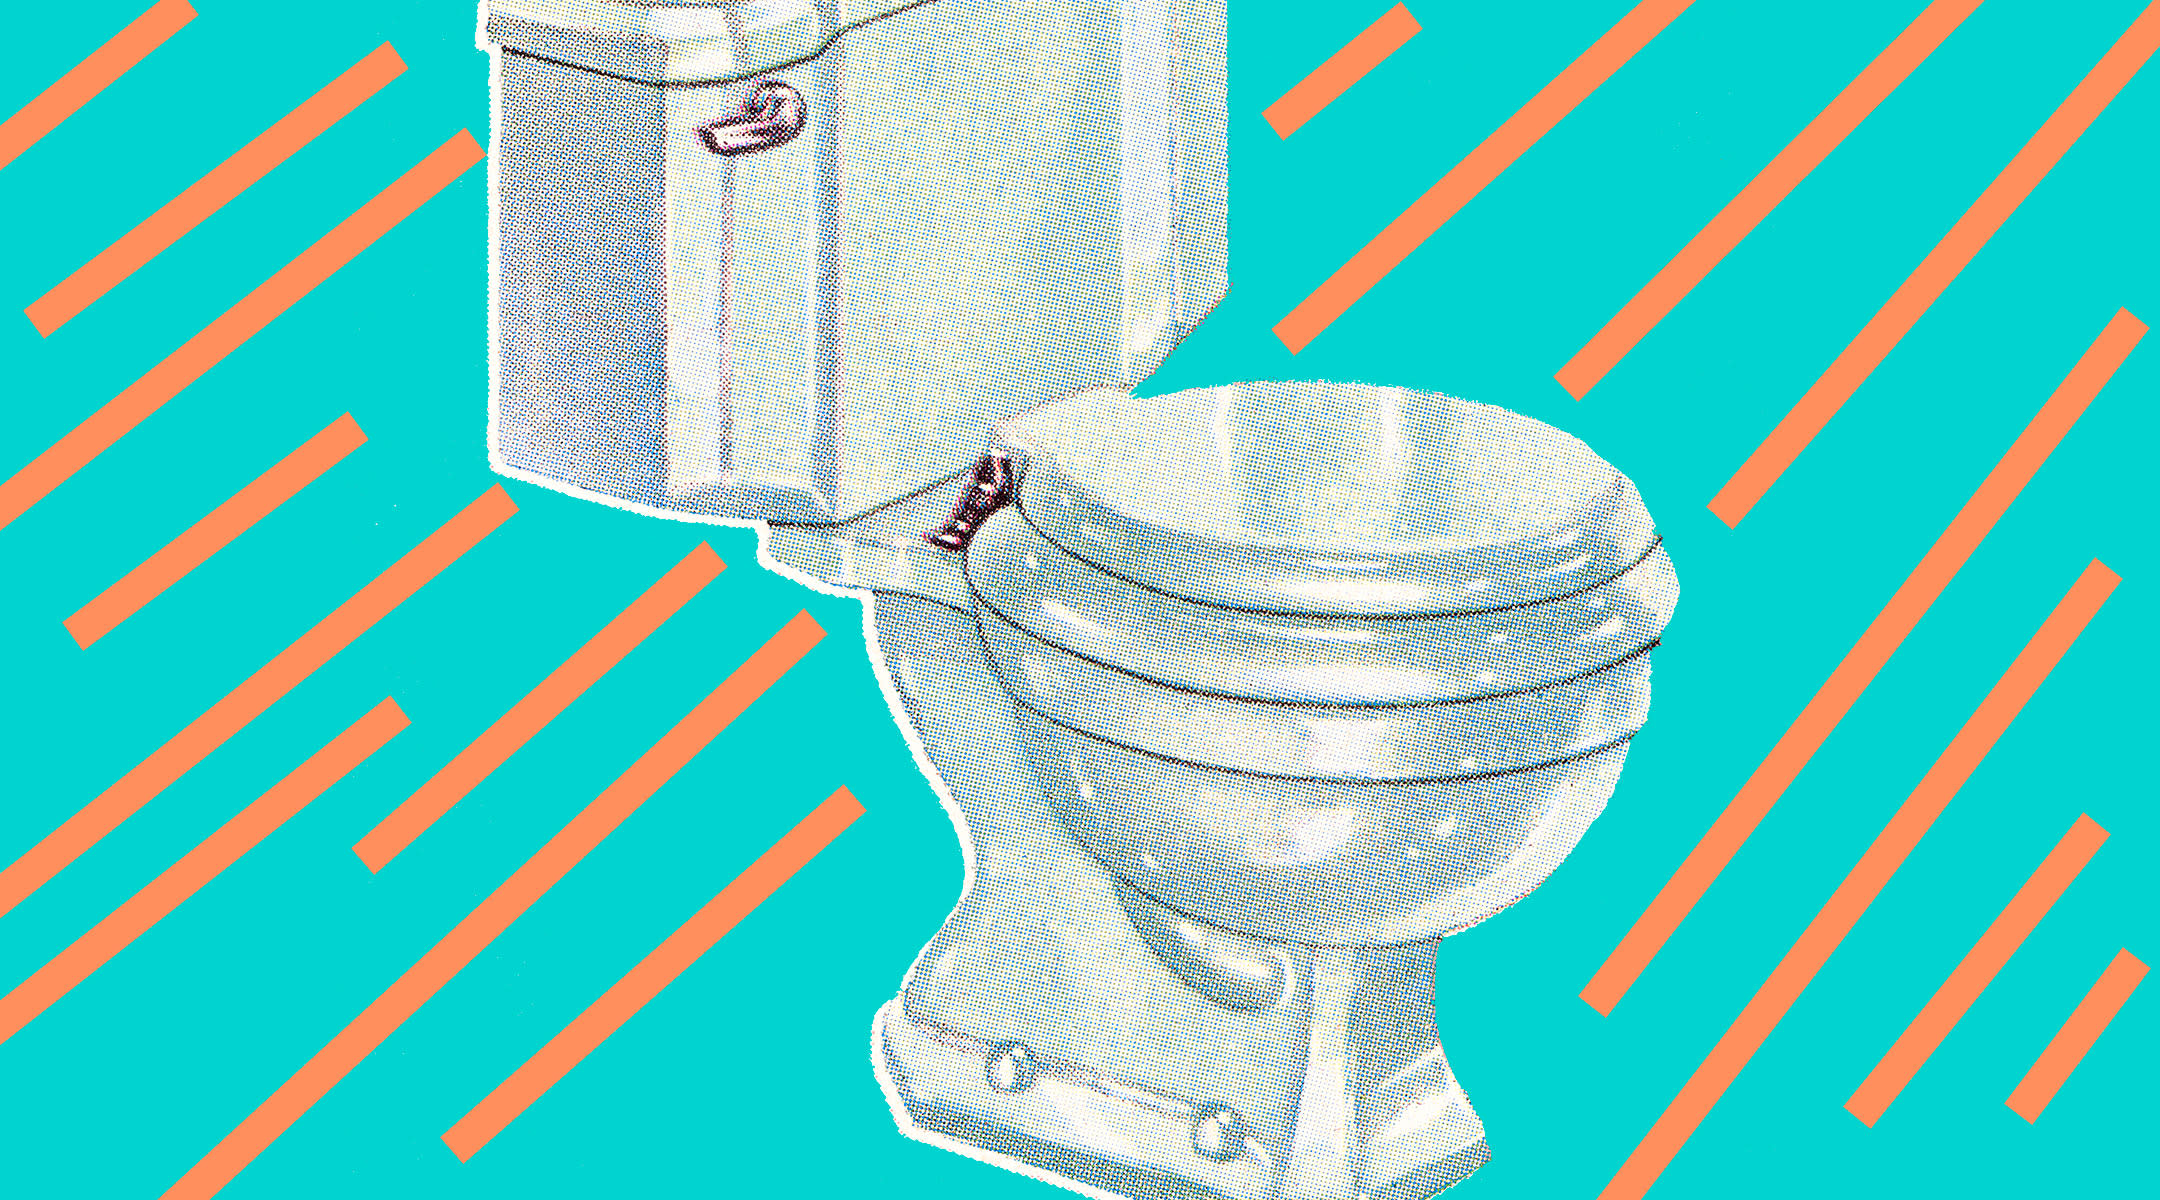 toilet with illustrate stripe background